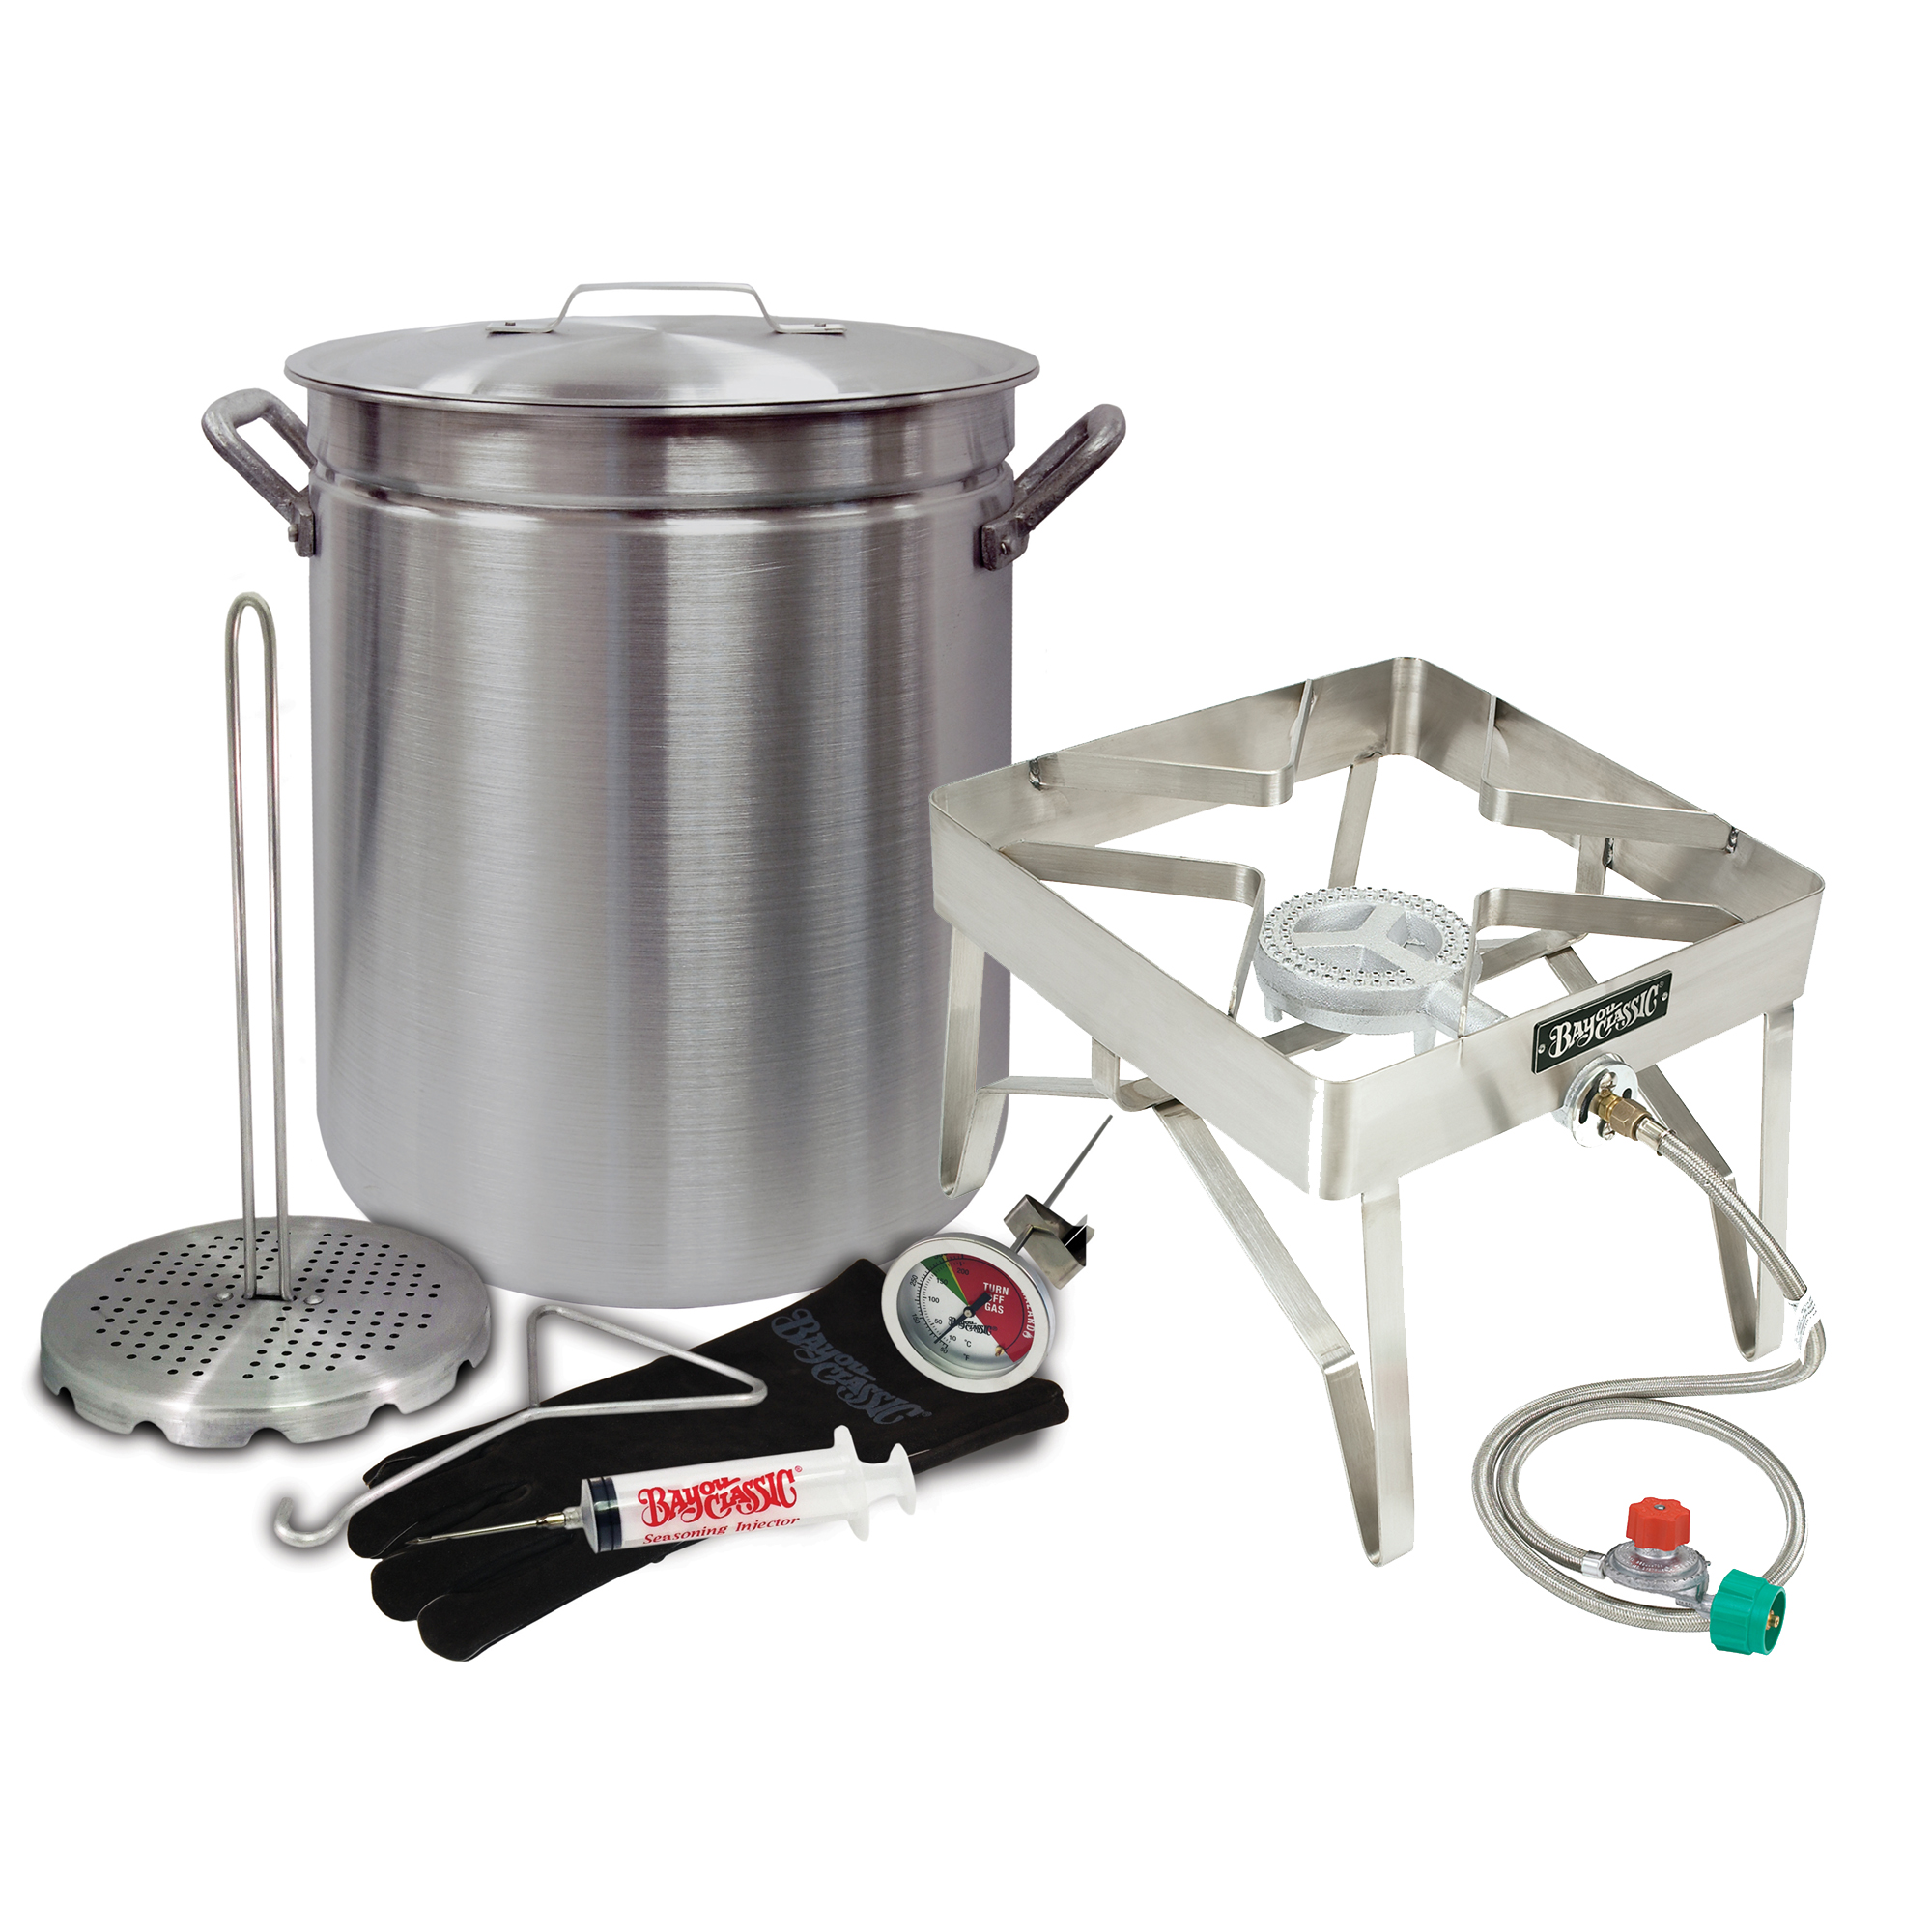 "Bayou Classic Deep Fryer ""GRAND GOBBLER"" Turkey Kit for Oversized Birds (25+ LBS Turkeys) 42-Quart Aluminum Stockpot and Stainless Steel Burner Stand"